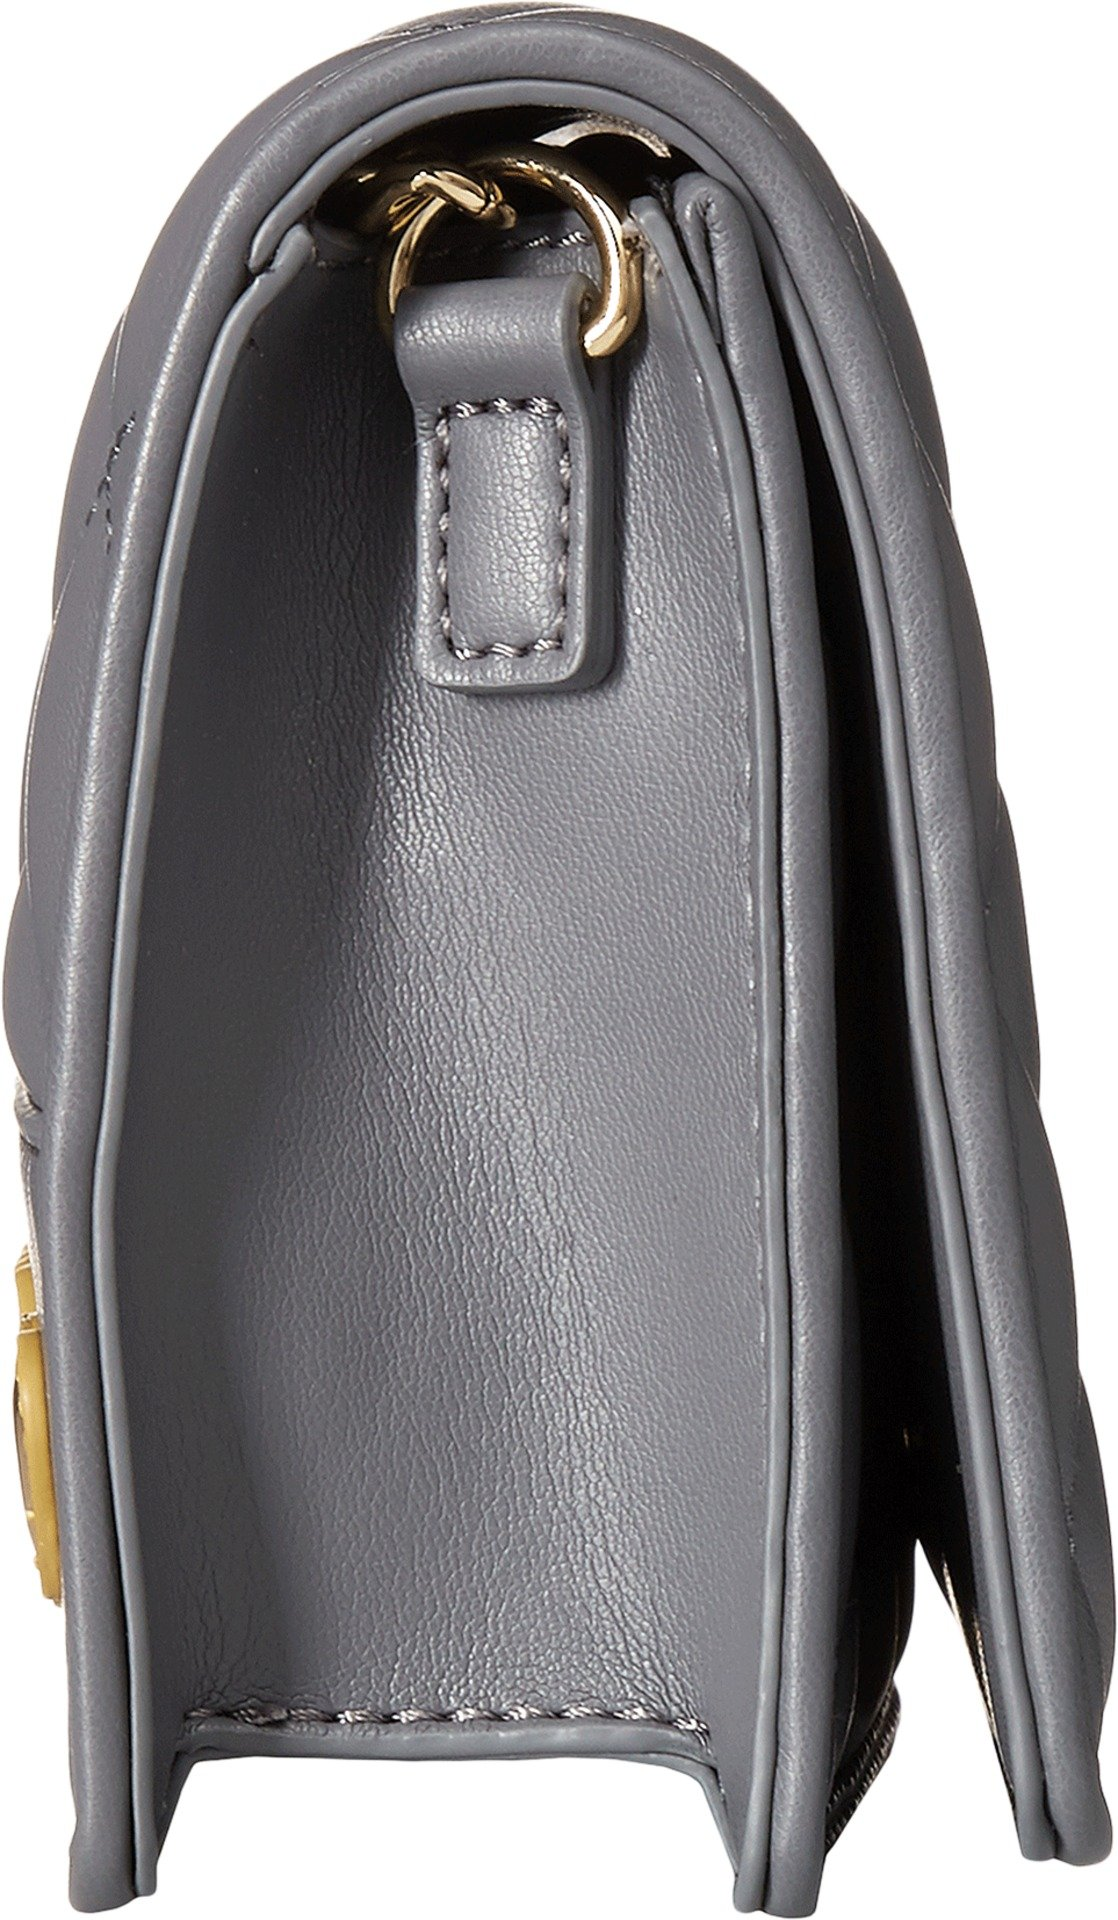 LOVE Moschino Women's Super Quilted Clutch Dark Grey One Size by Love Moschino (Image #3)